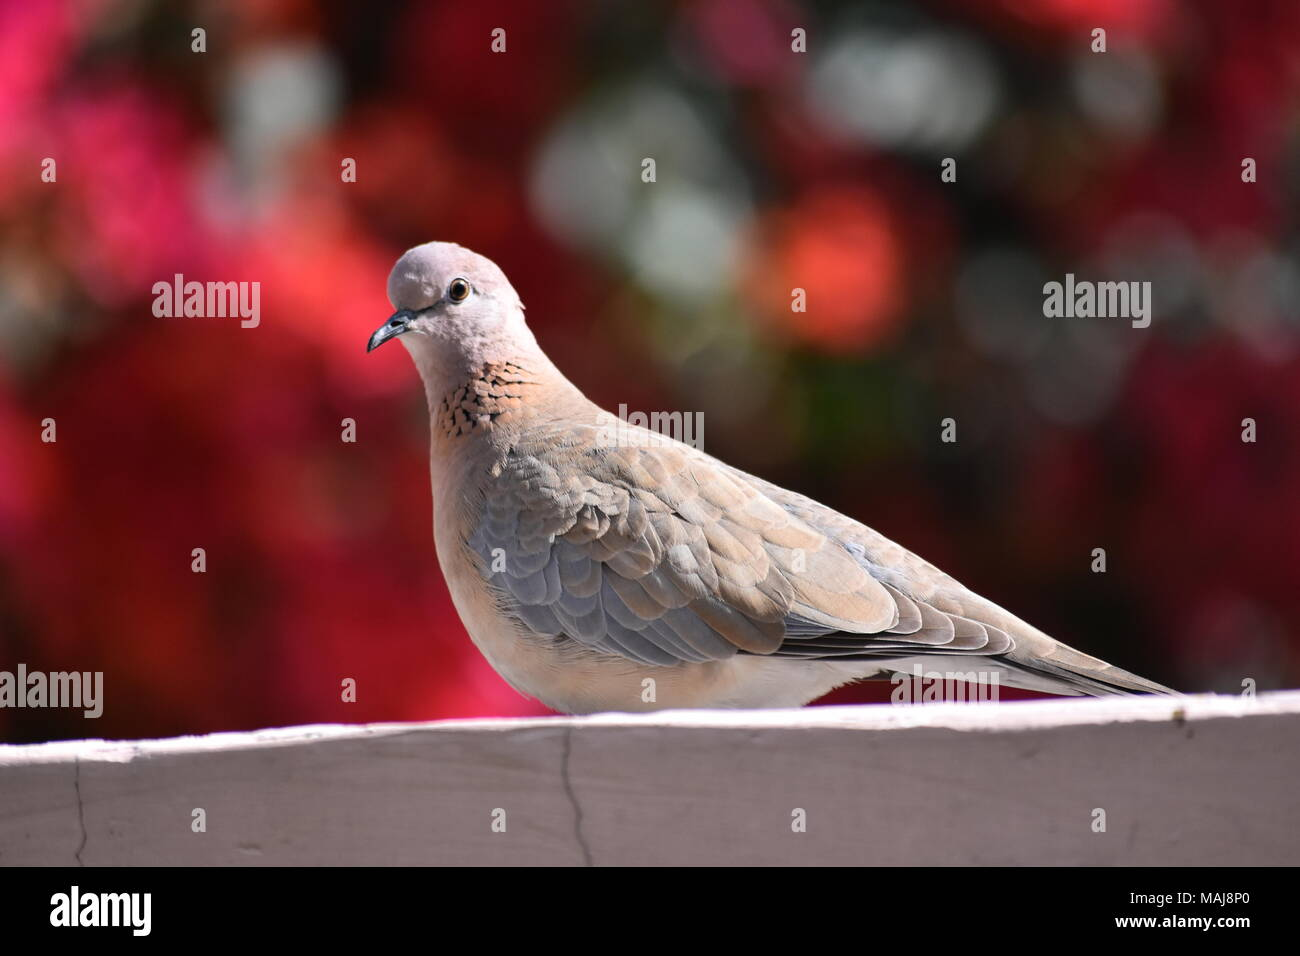 The Laughing Dove or Spilopelia senegalensis. - Stock Image